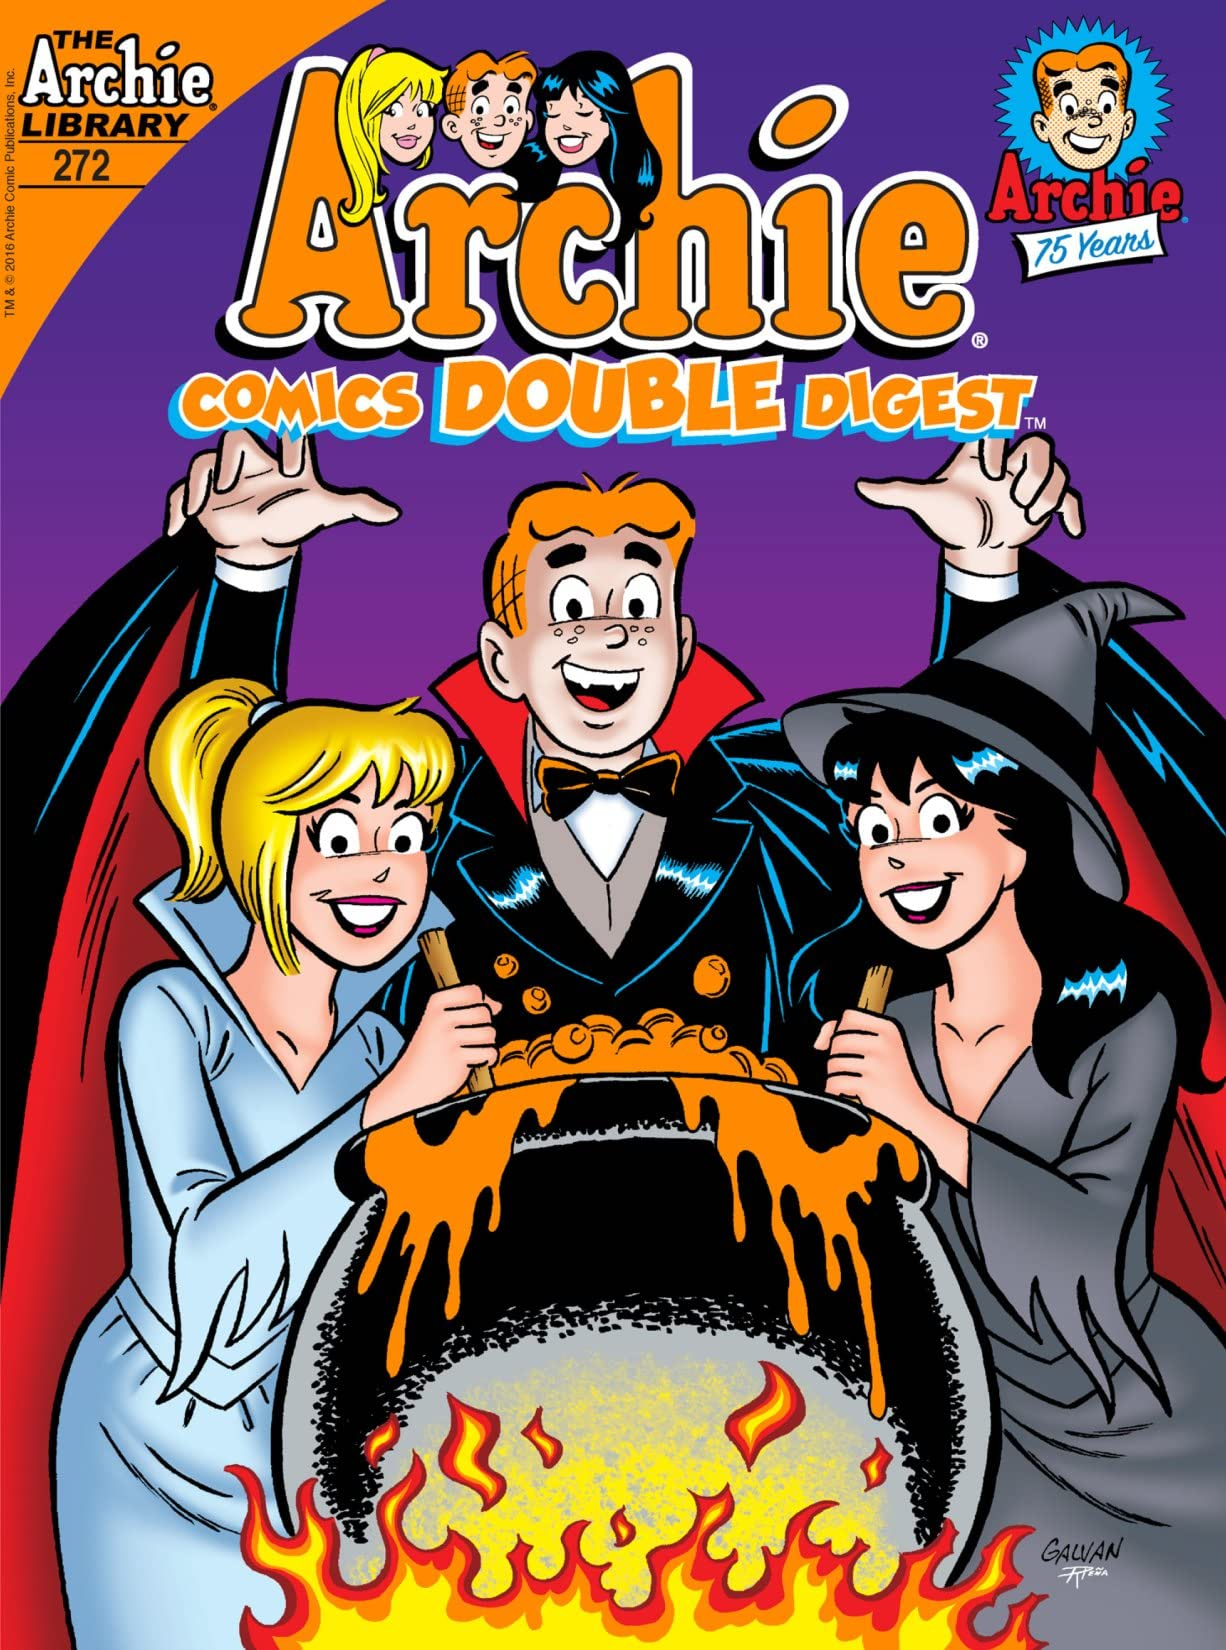 Archie Comics Double Digest #272